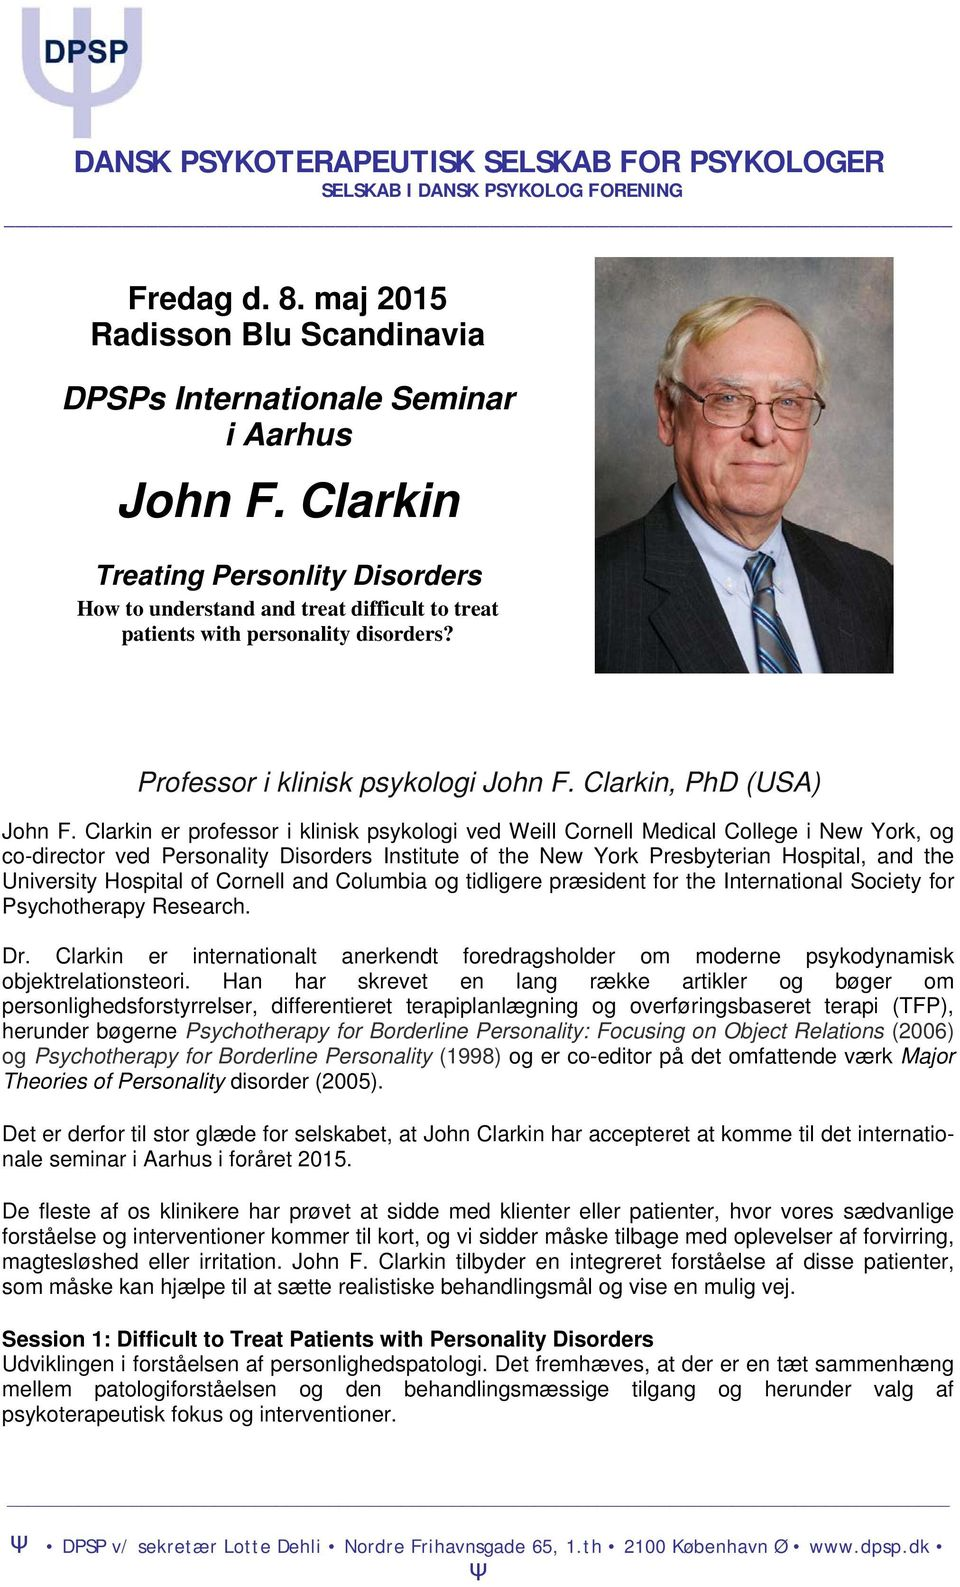 Clarkin er professor i klinisk psykologi ved Weill Cornell Medical College i New York, og co-director ved Personality Disorders Institute of the New York Presbyterian Hospital, and the University